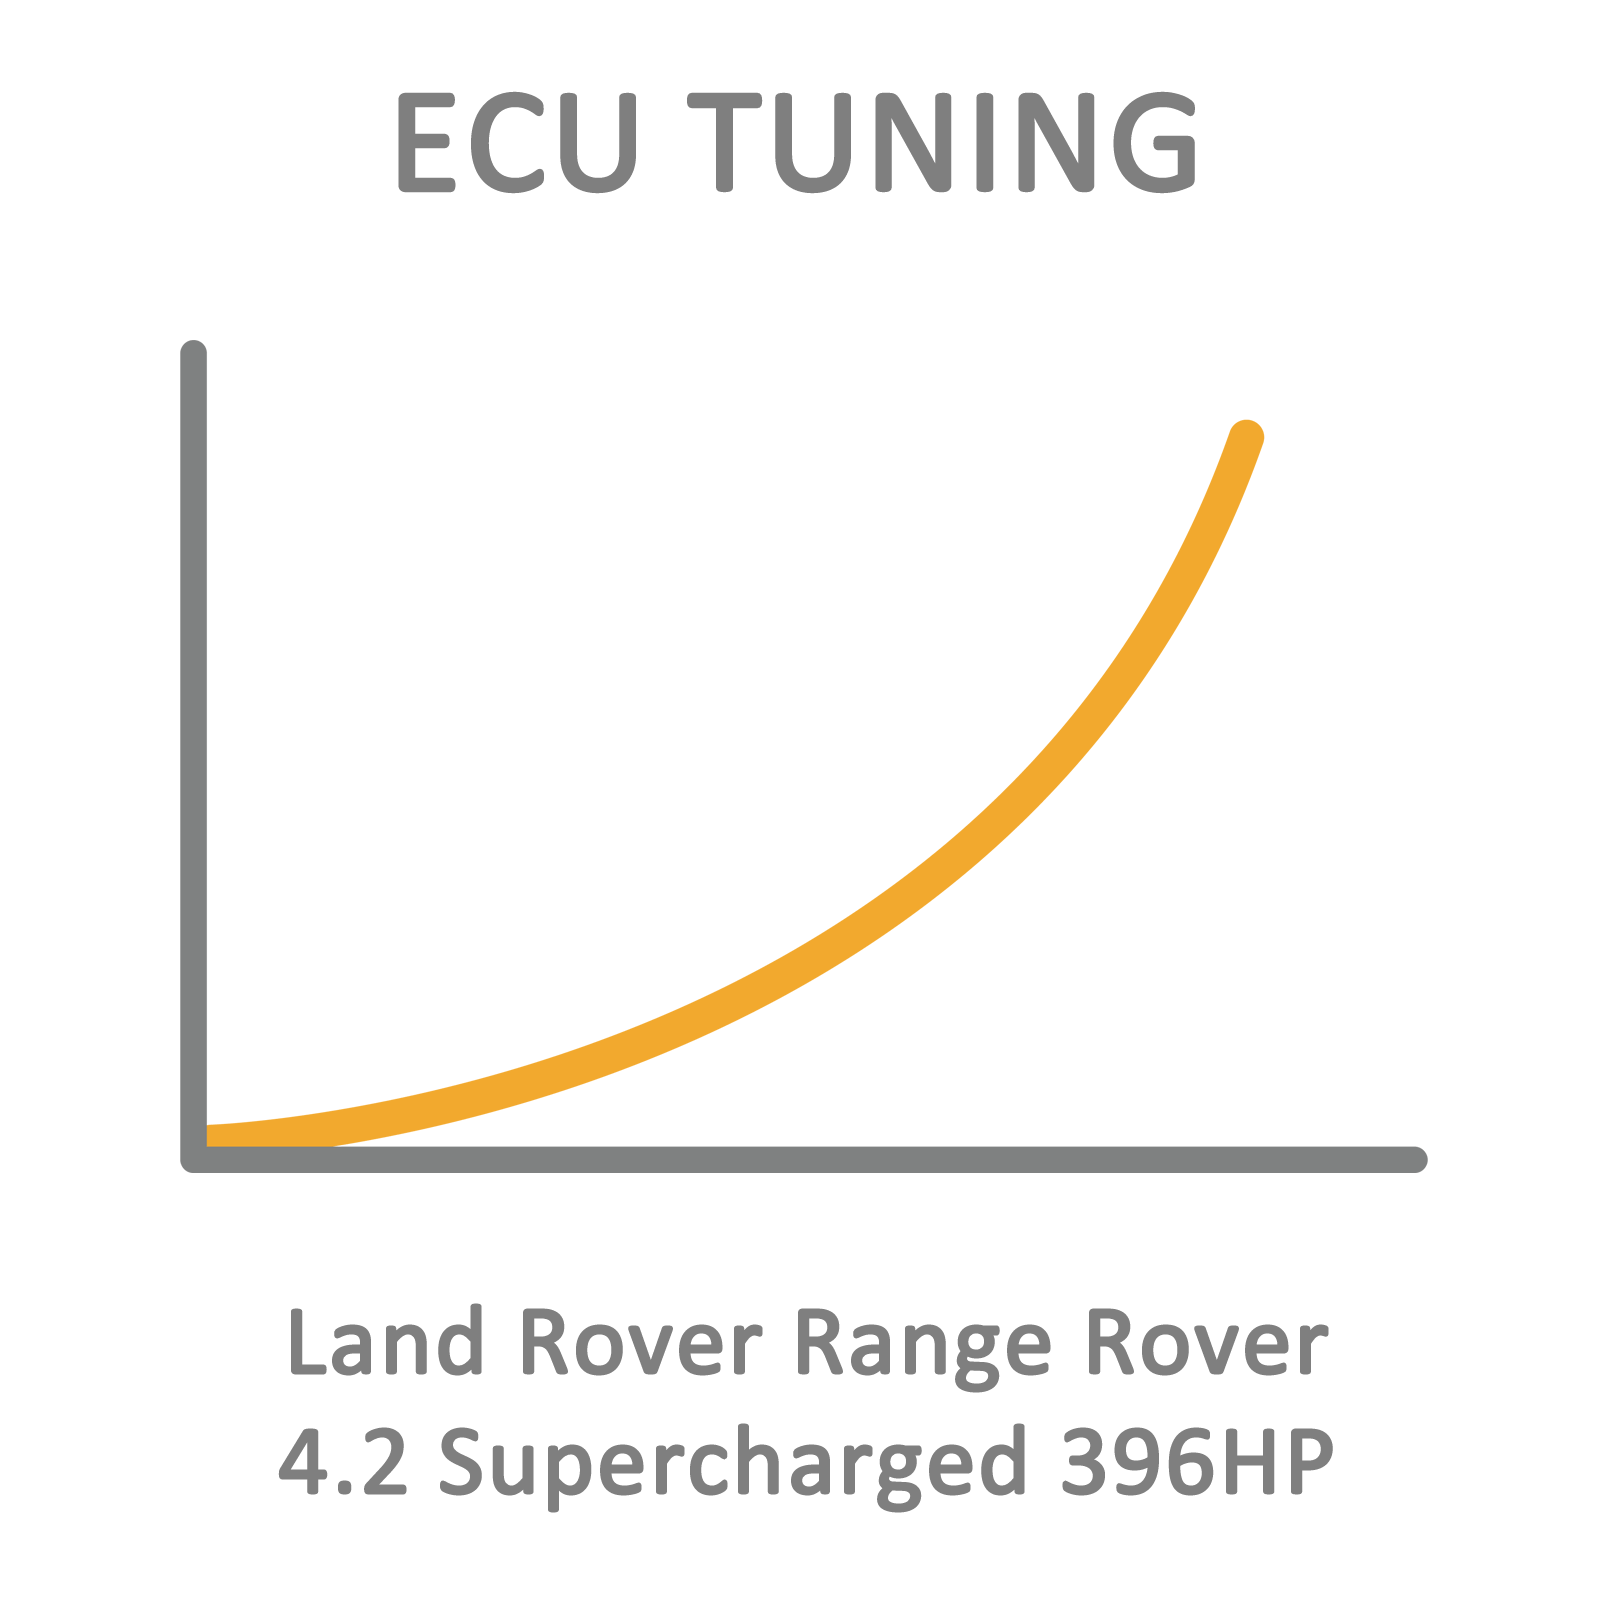 Land Rover Range Rover 4.2 Supercharged 396HP ECU Tuning